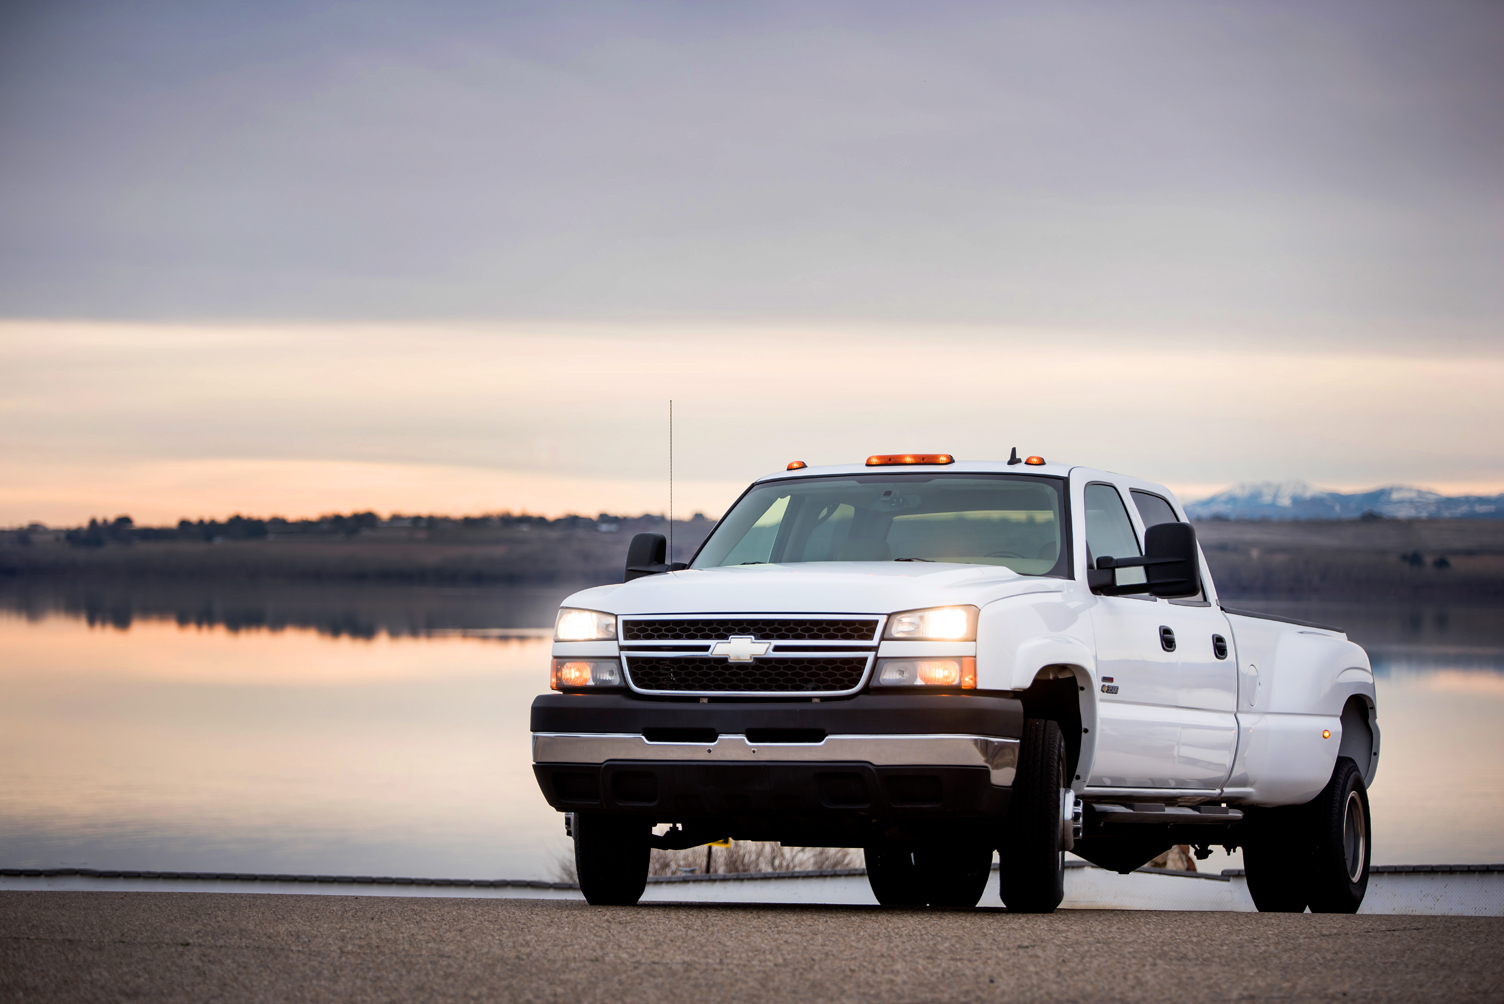 0492 _ 06 Chevy Silverado 3500 CcDually p51-1